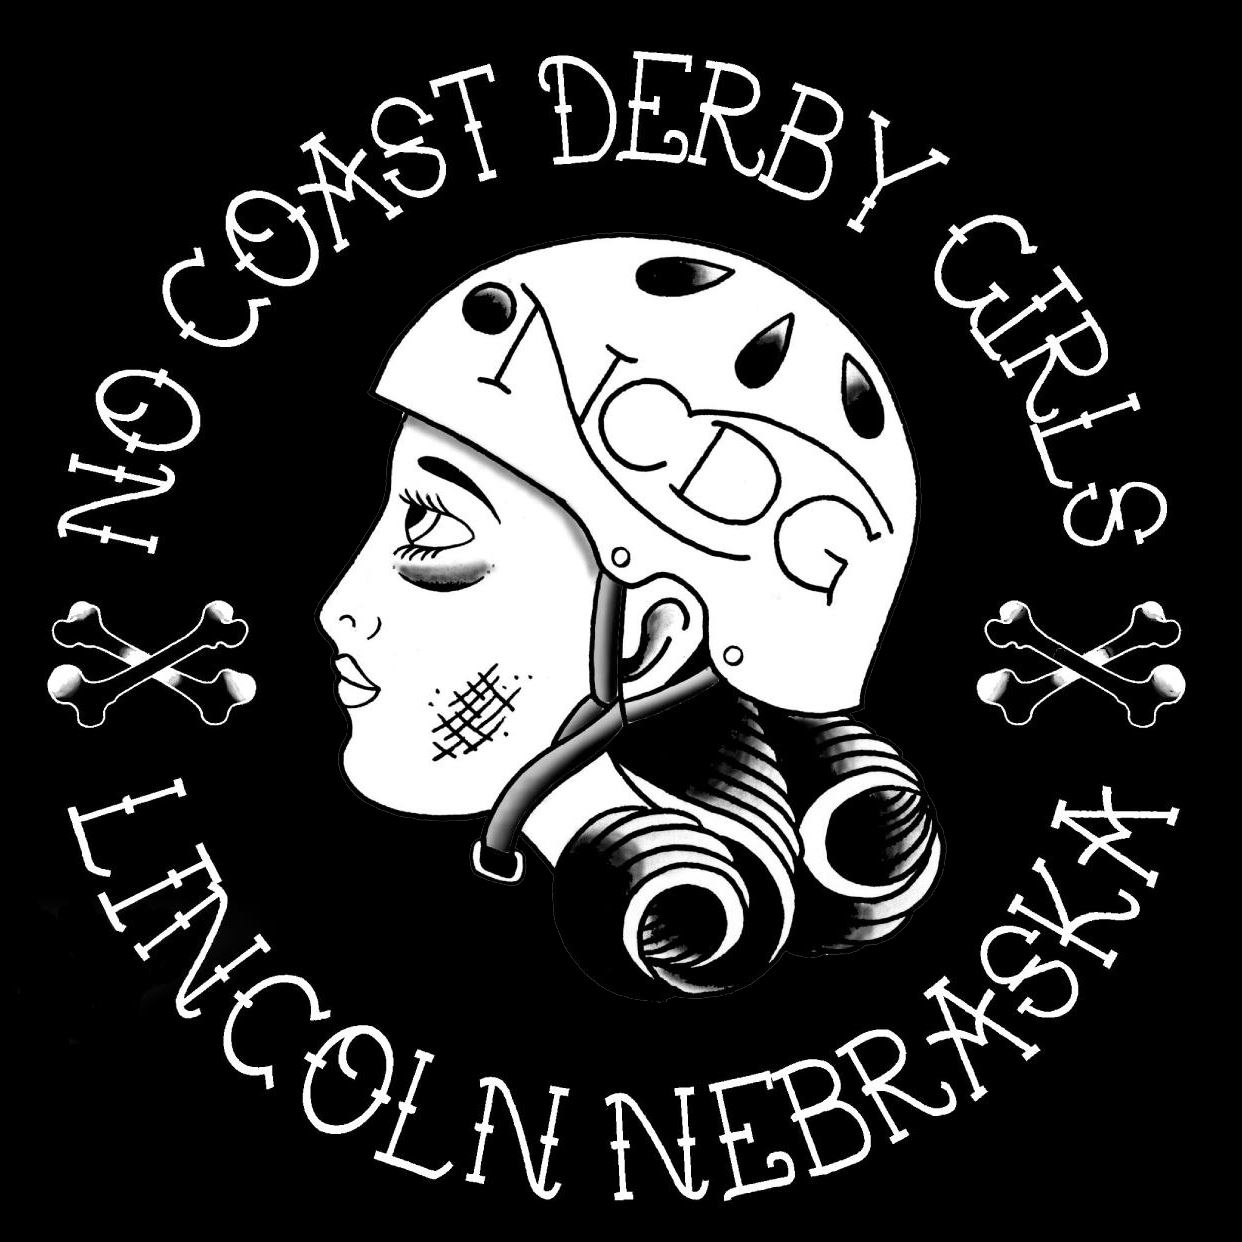 No Coast Derby Girls - Mad Maxines